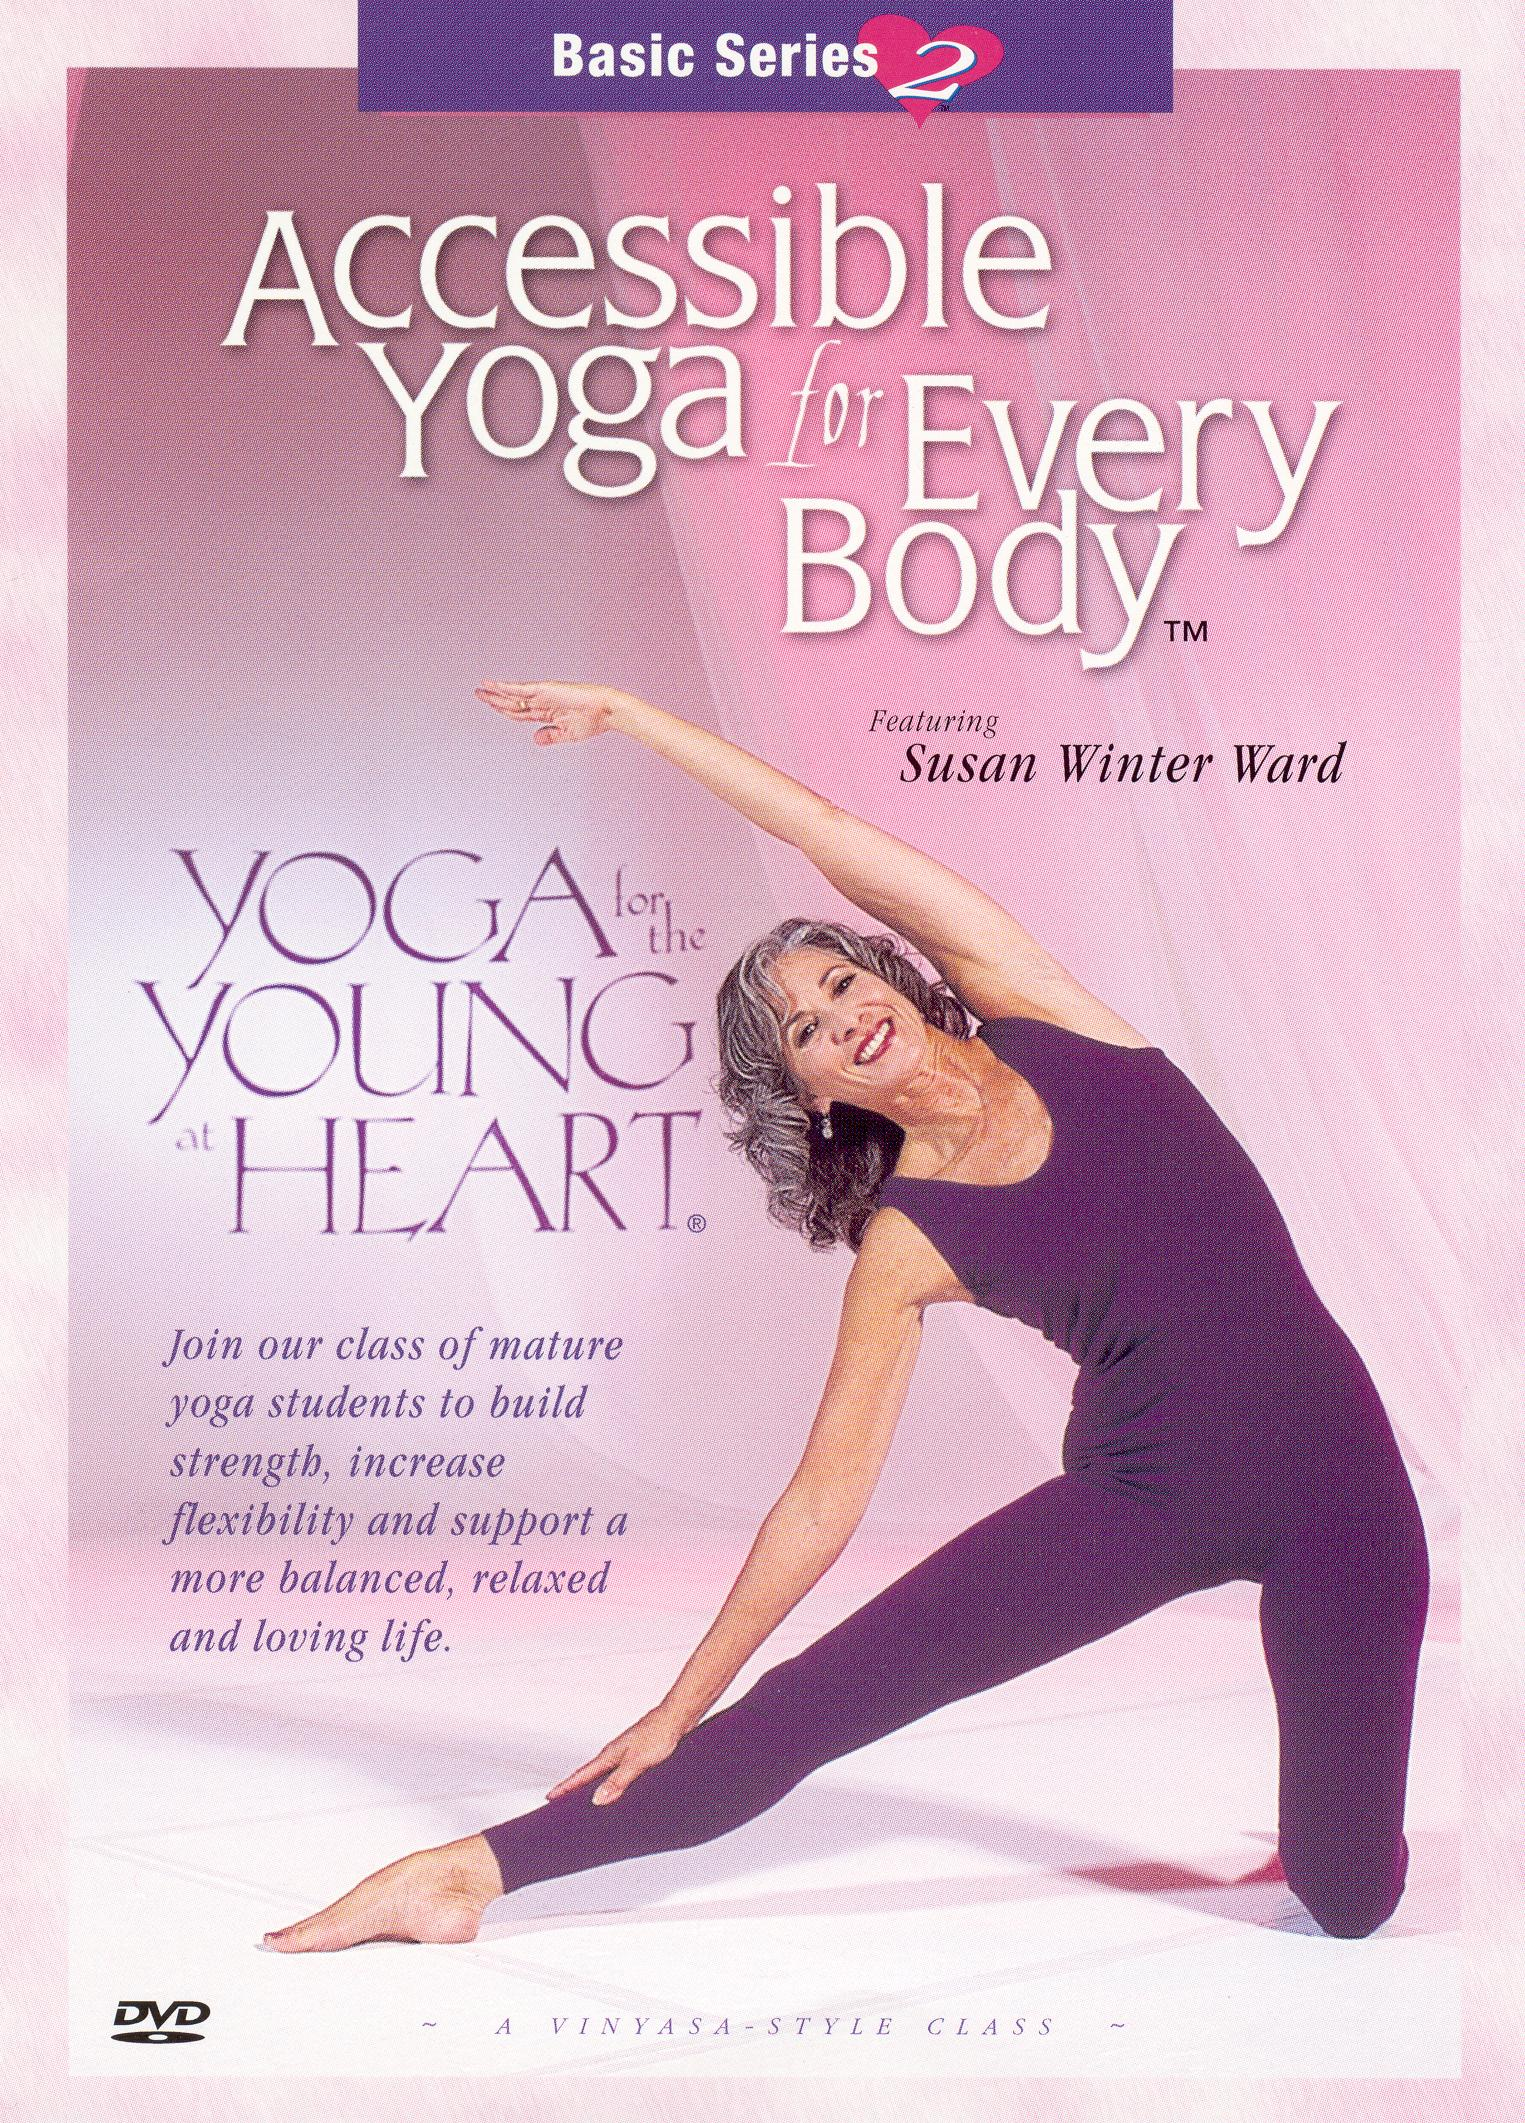 Yoga for the Young at Heart, Vol. 2: Accessible Yoga for Every Body